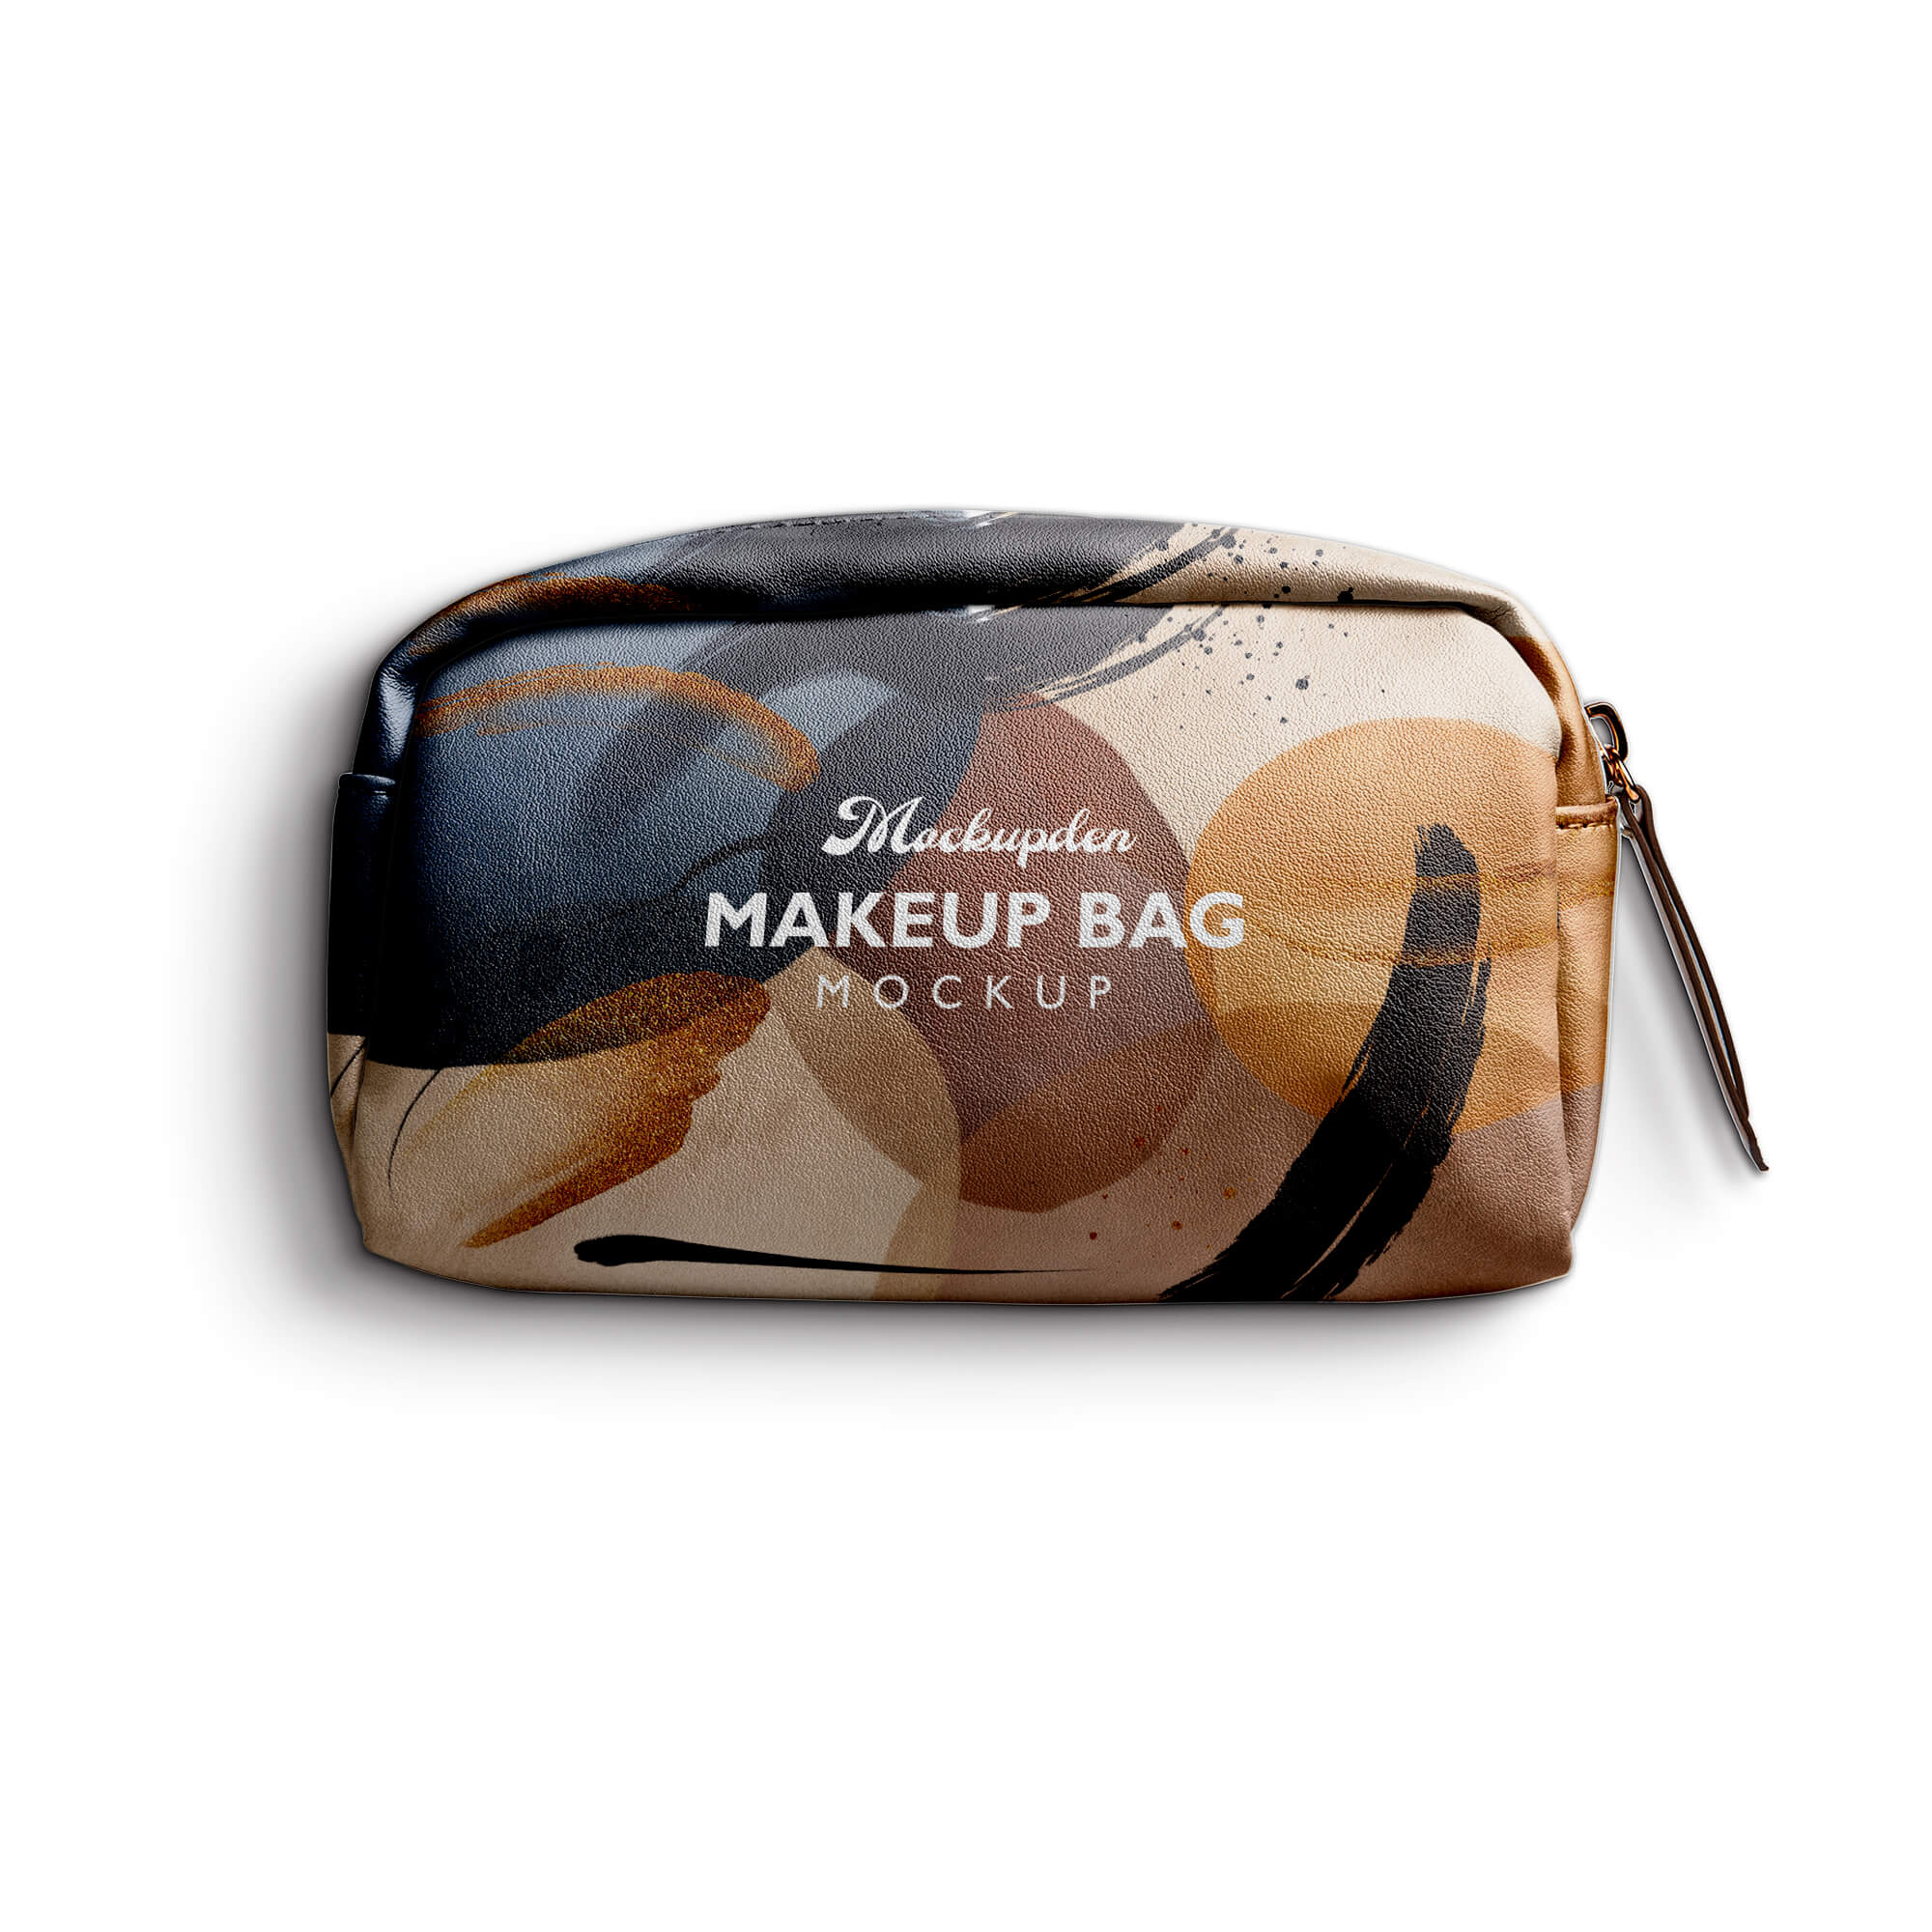 Design Free Makeup Bag Mockup PSD Template